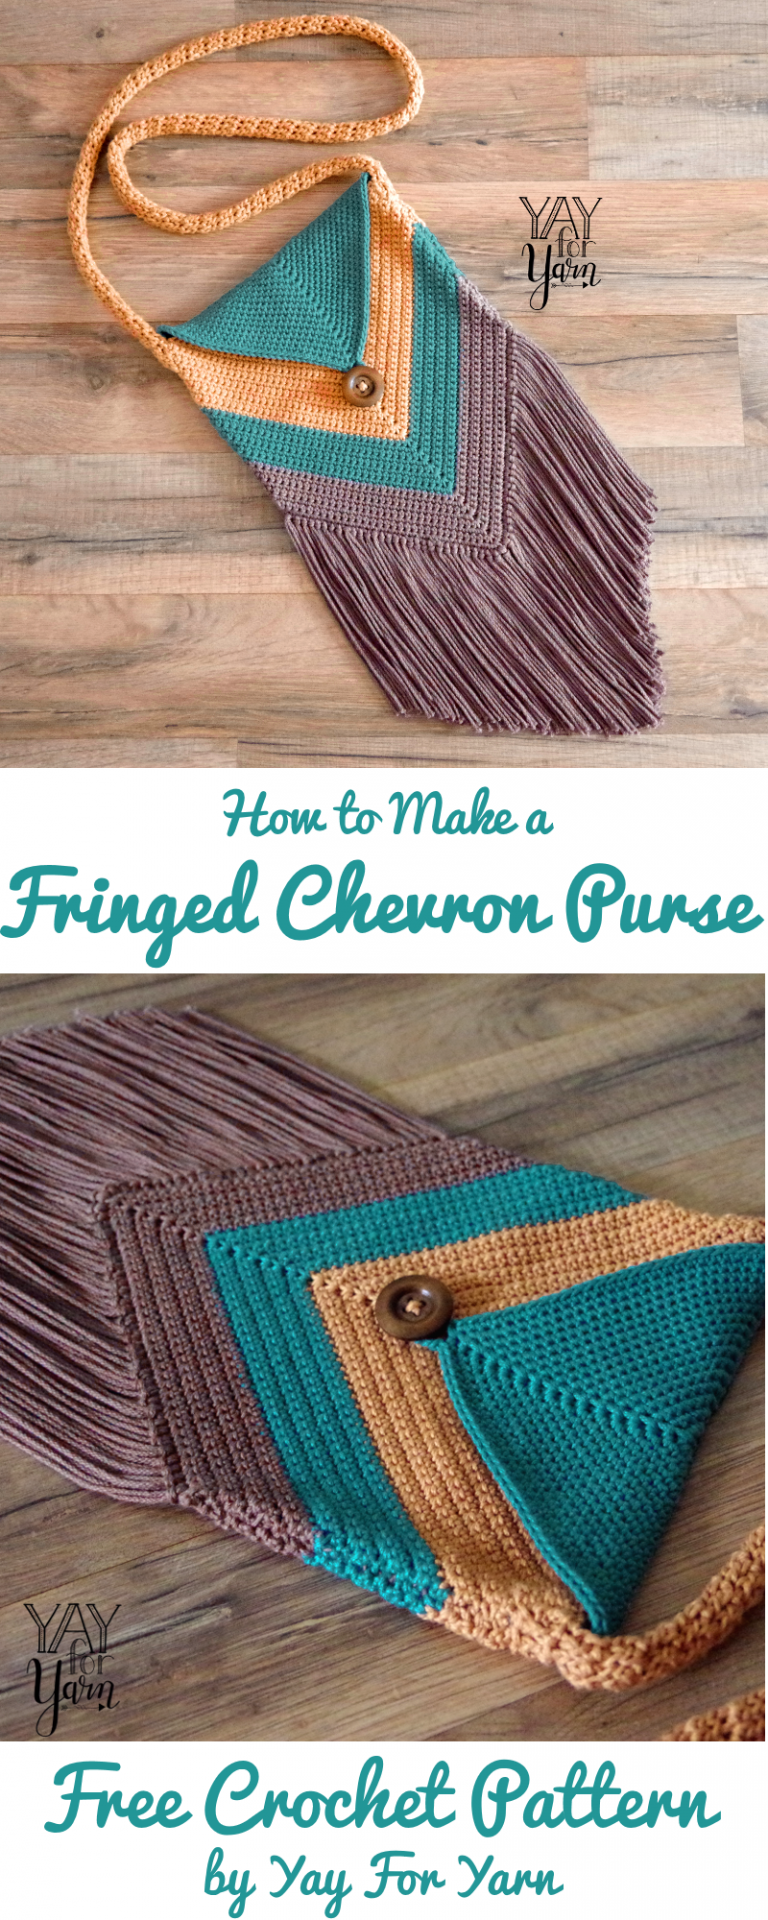 Fringed Chevron Purse - FREE Crochet Pattern